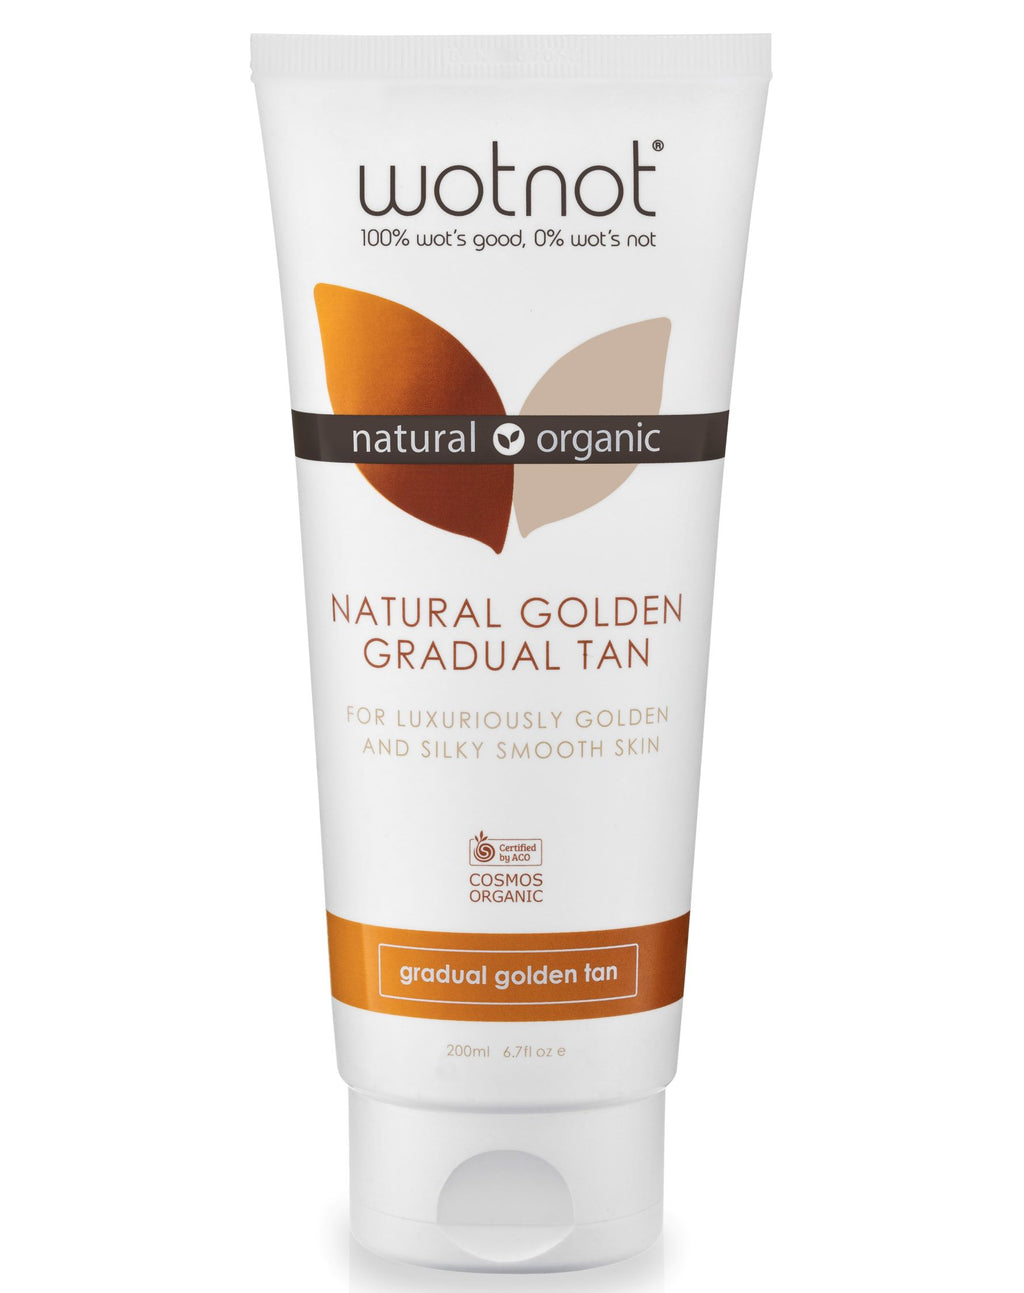 Wotnot COSMOS Certified Organic Natural Golden Gradual Tanning Lotion (200ml)